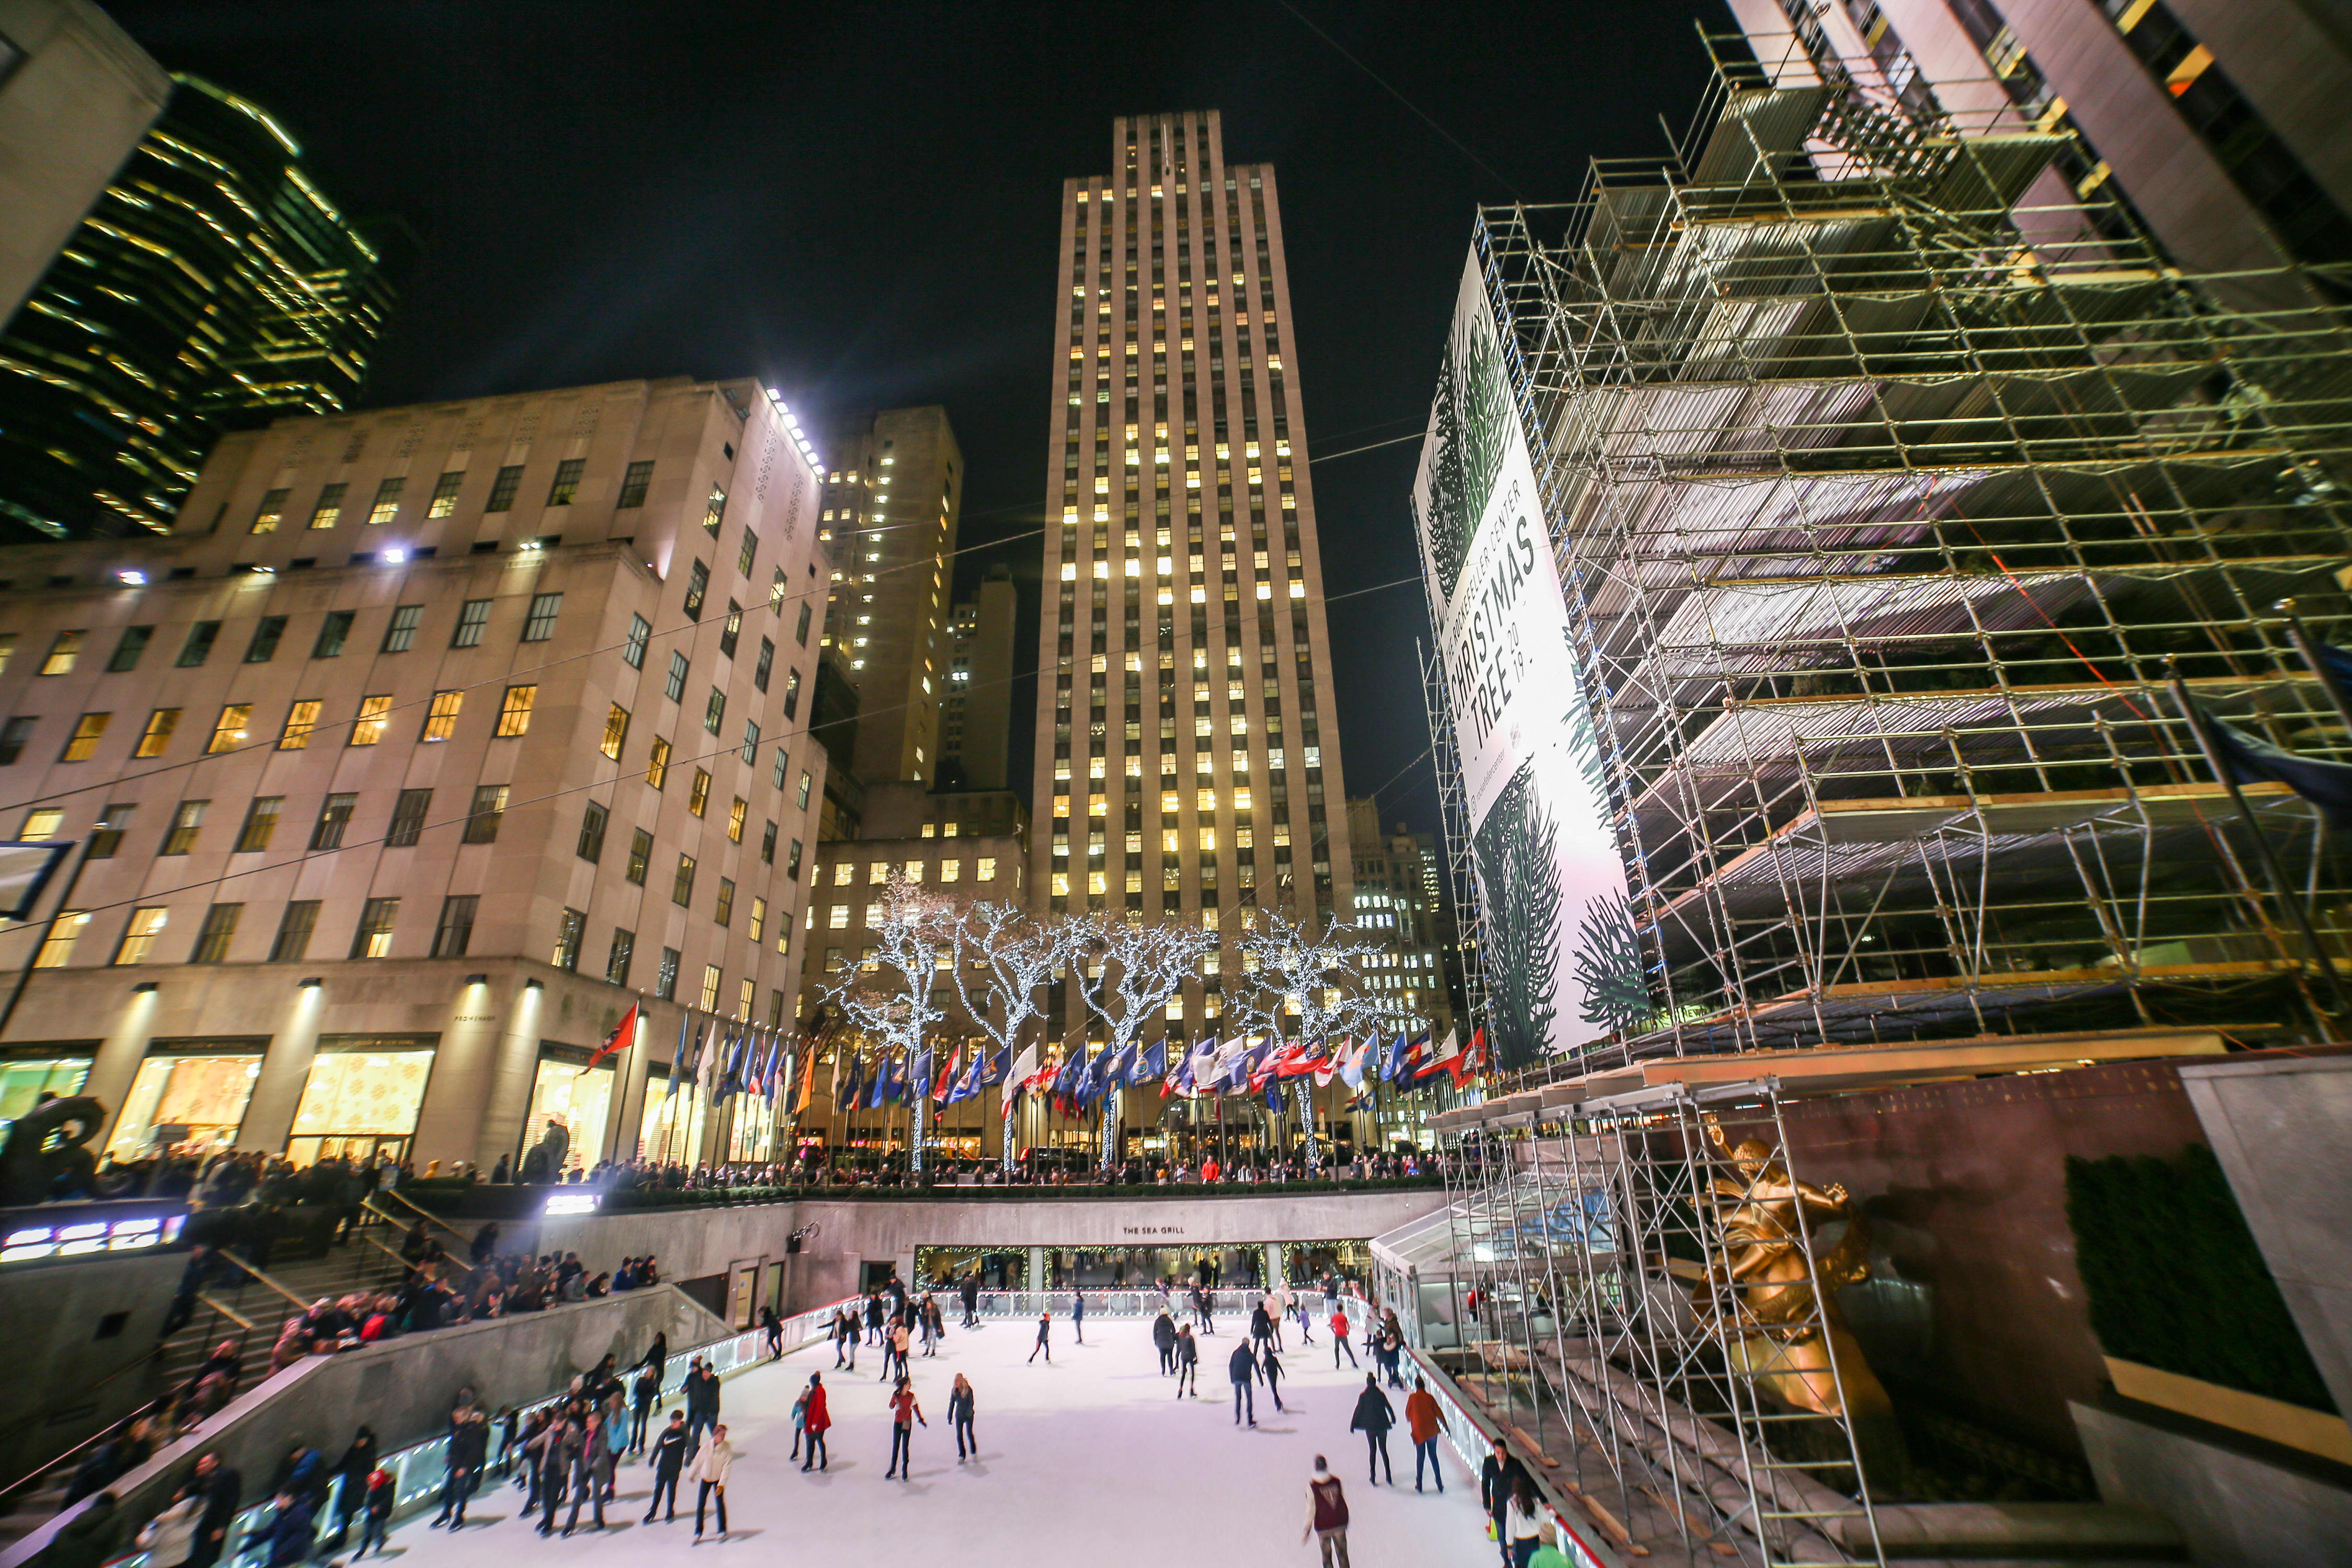 Mayor de Blasio announces streets to partially close near Rock Center for 'historic' pedestrian holiday space